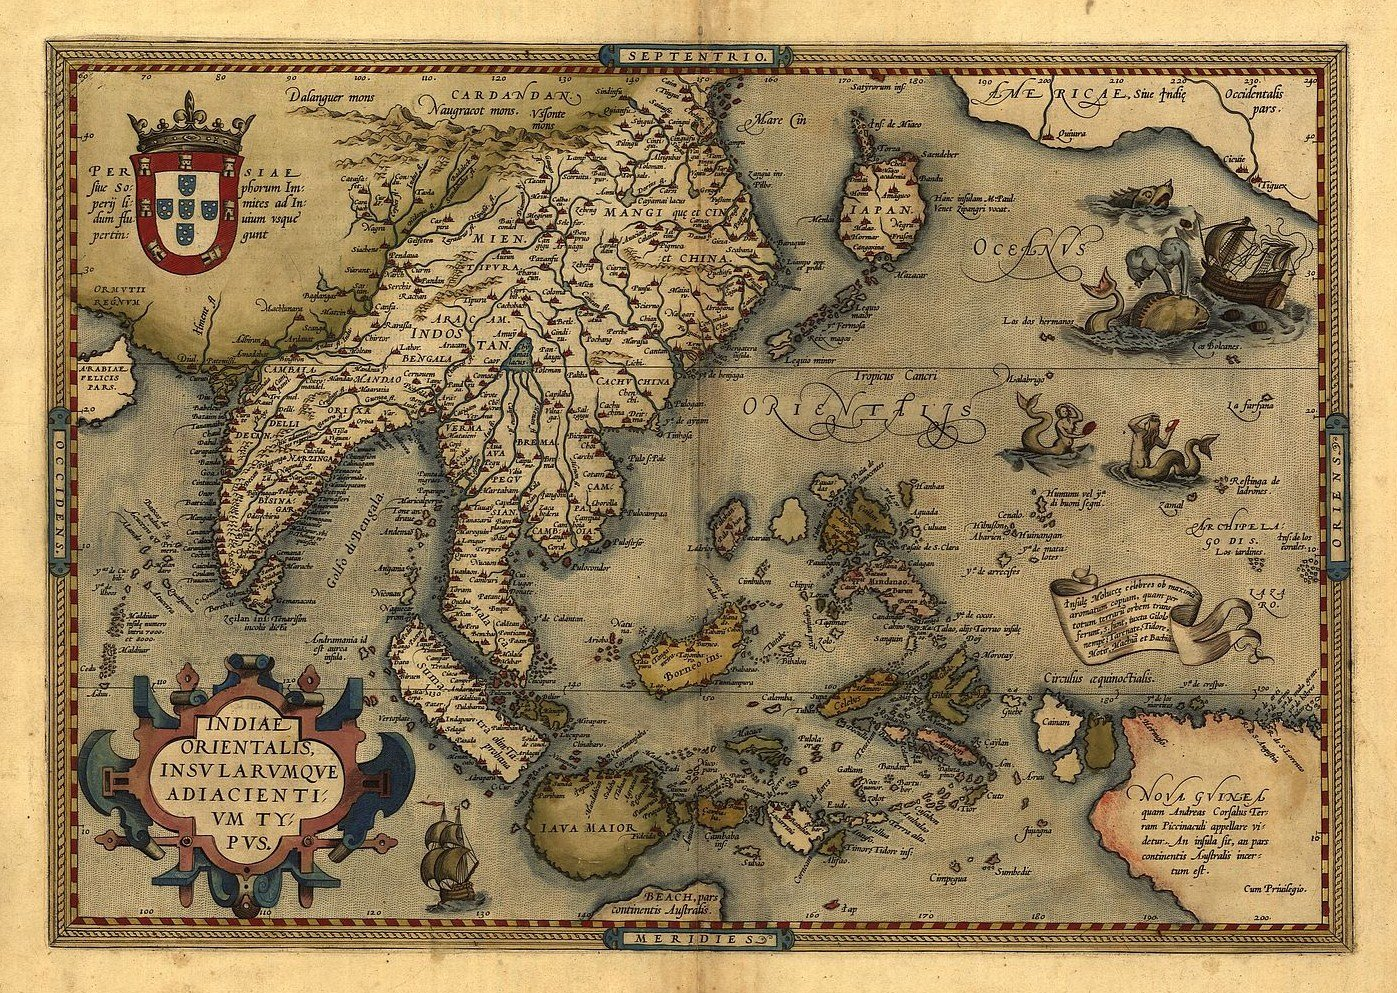 Reproduction Antique Map of Asia Japan India South East Asia